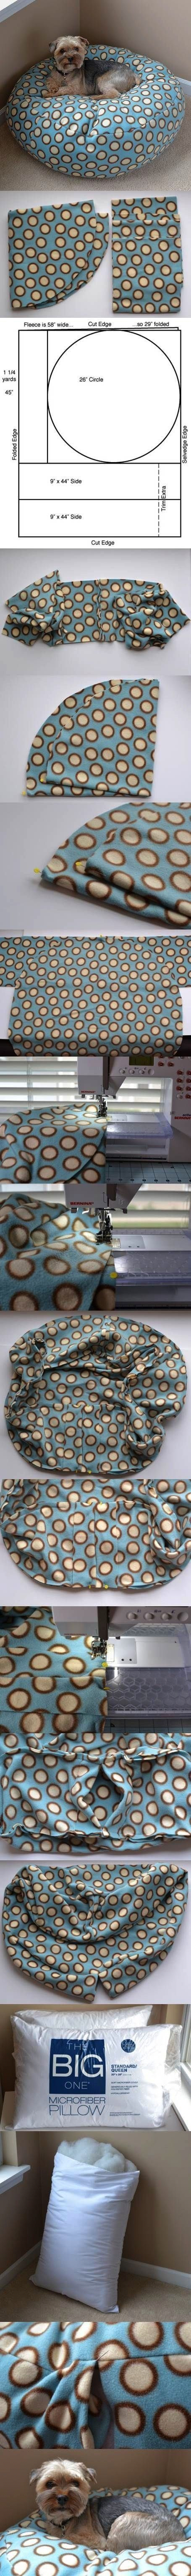 Epic DIY Dog Bed Ideas F : Epic DIY Dog Bed Ideas For Your Furry